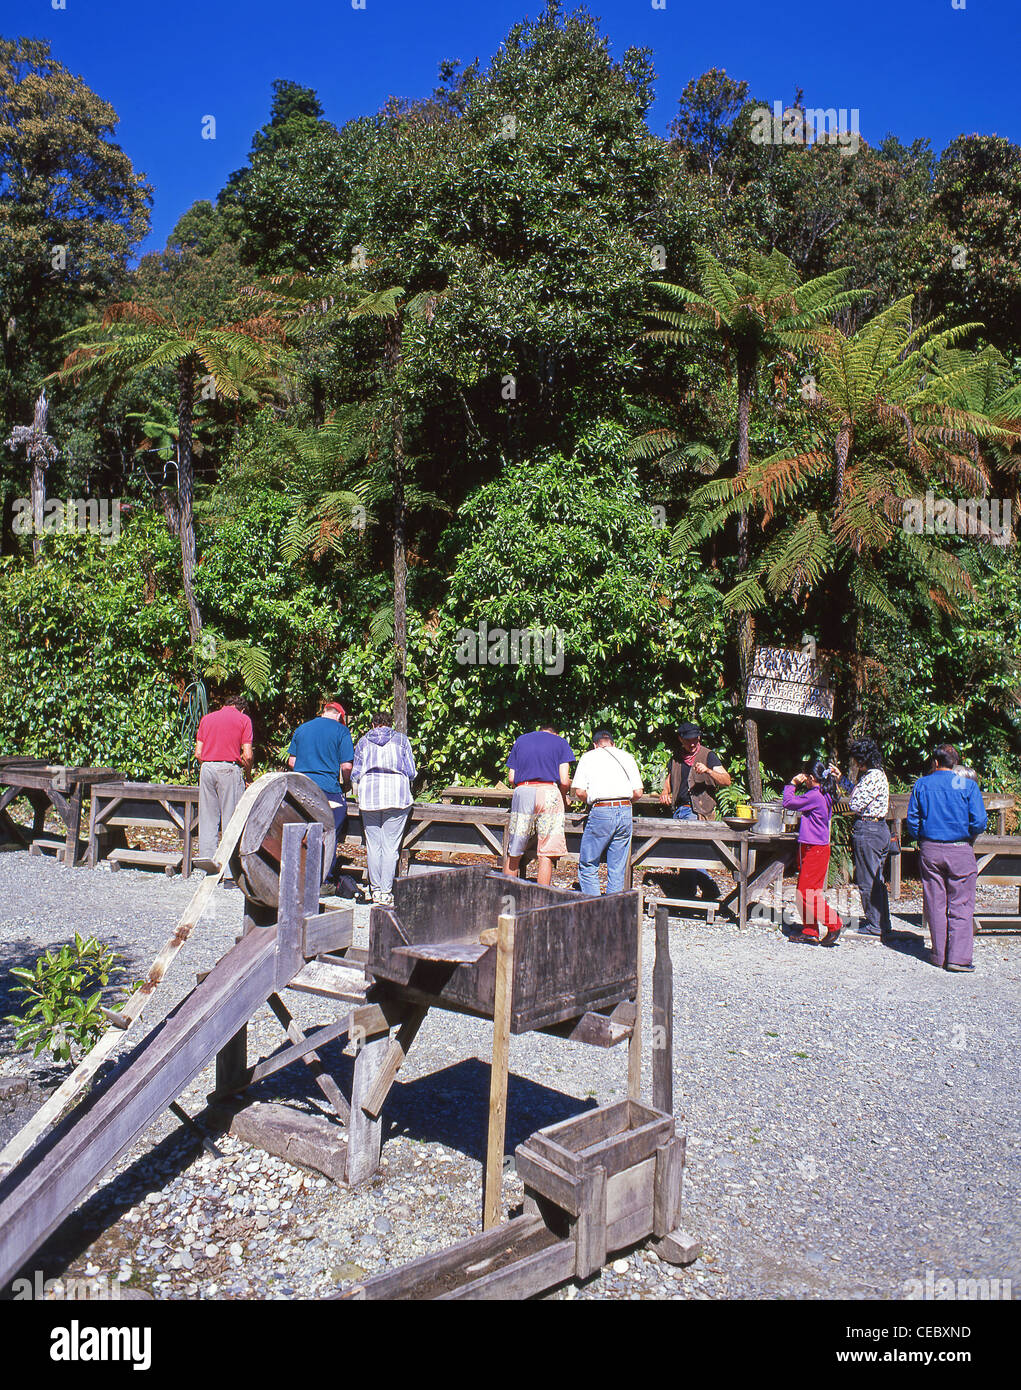 Tourists gold-panning at 19th century gold-mining town, Shantytown, Greymouth, West Coast Region, South Island, - Stock Image